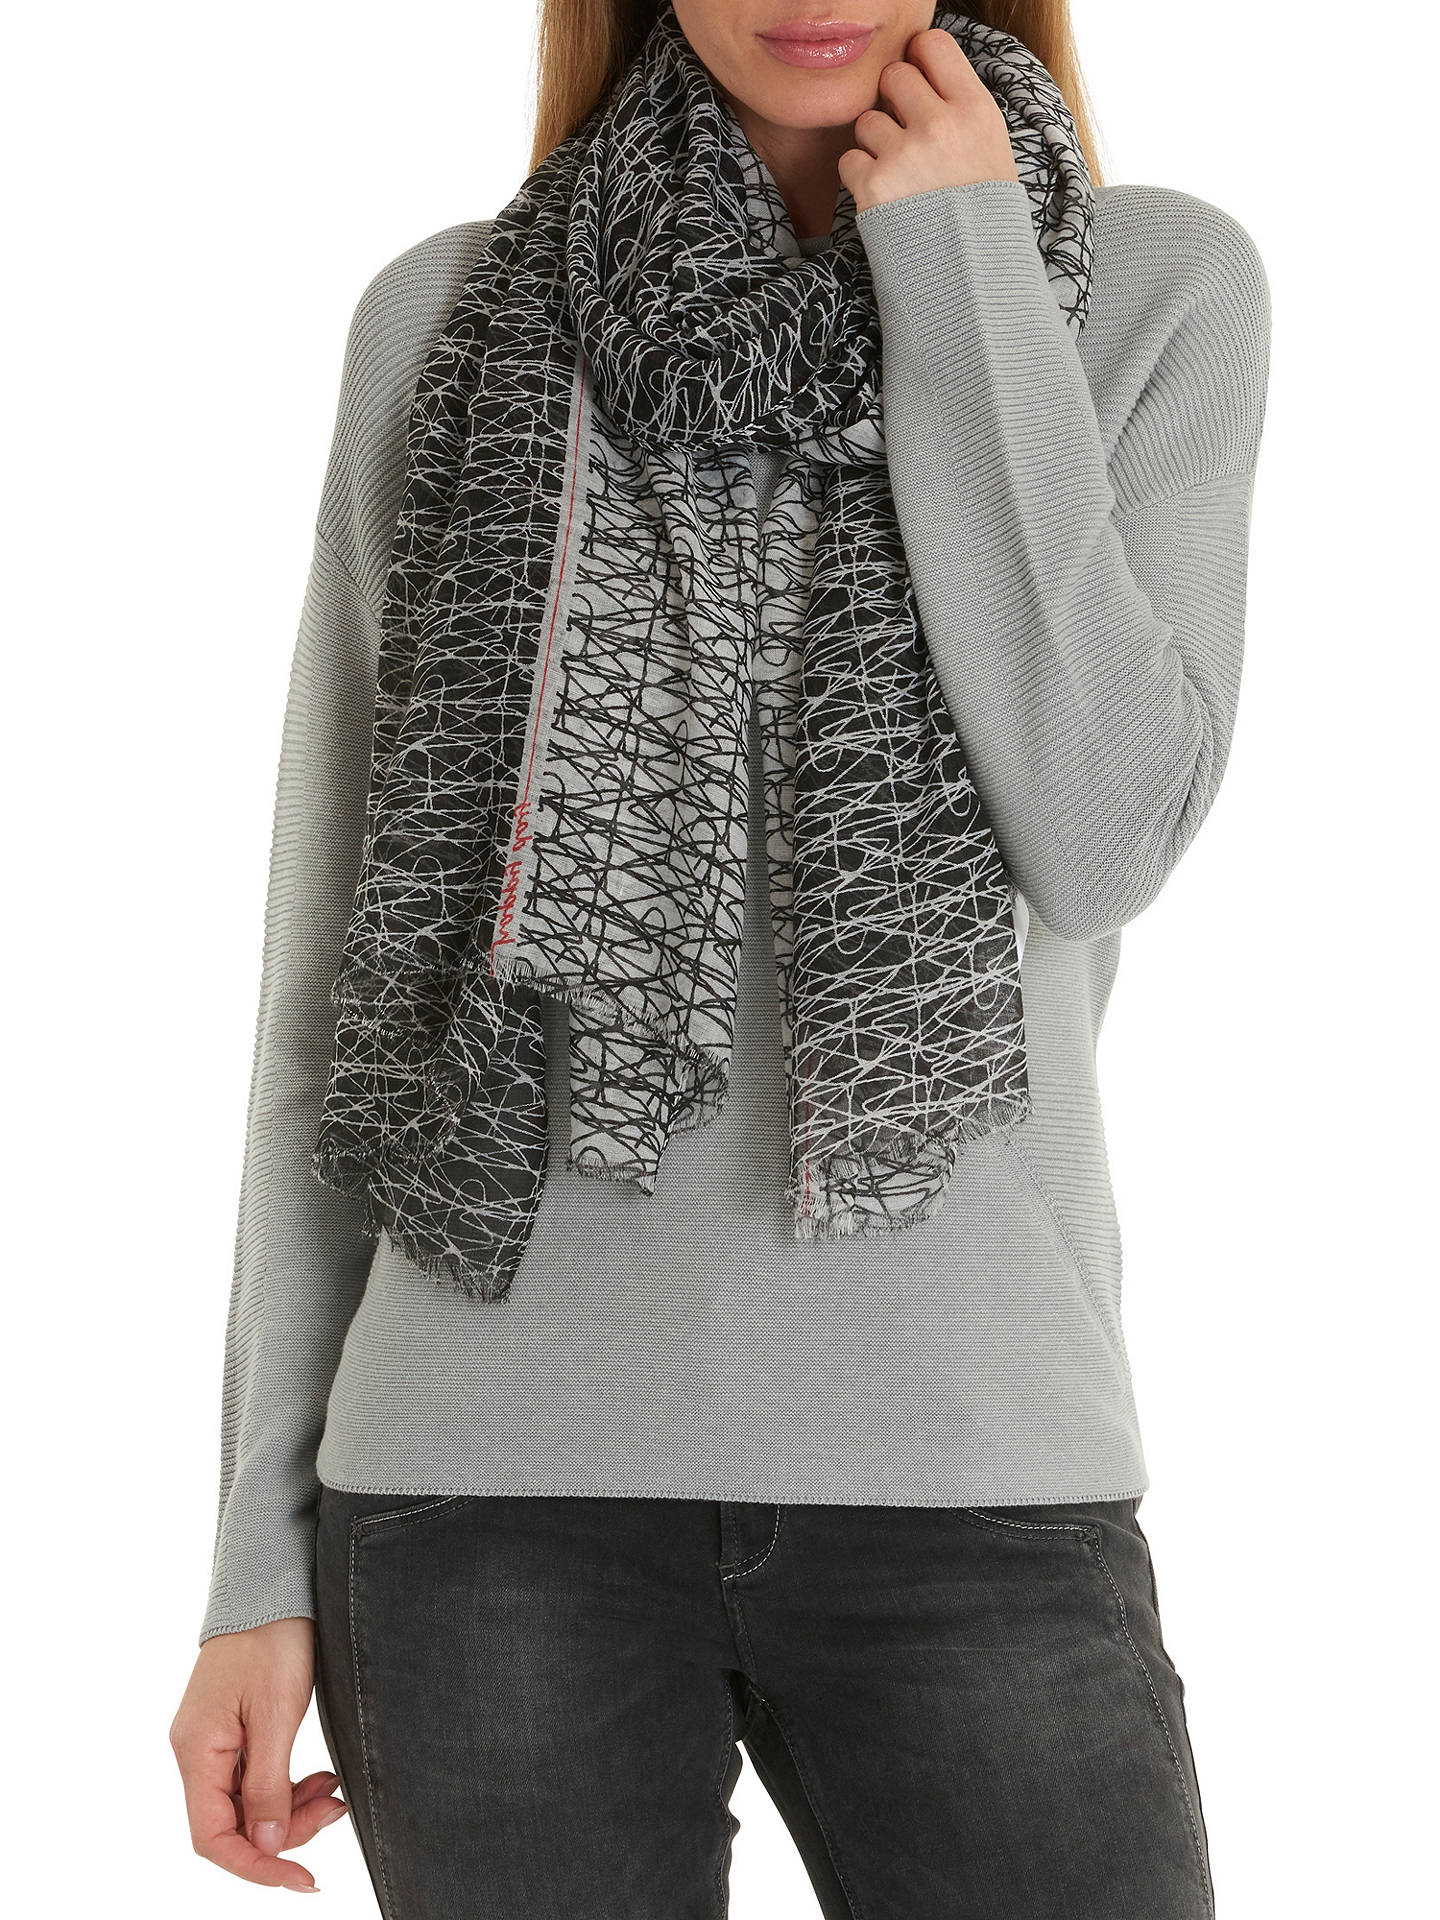 BuyBetty Barclay Scribble Print Scarf, Black/White Online at johnlewis.com